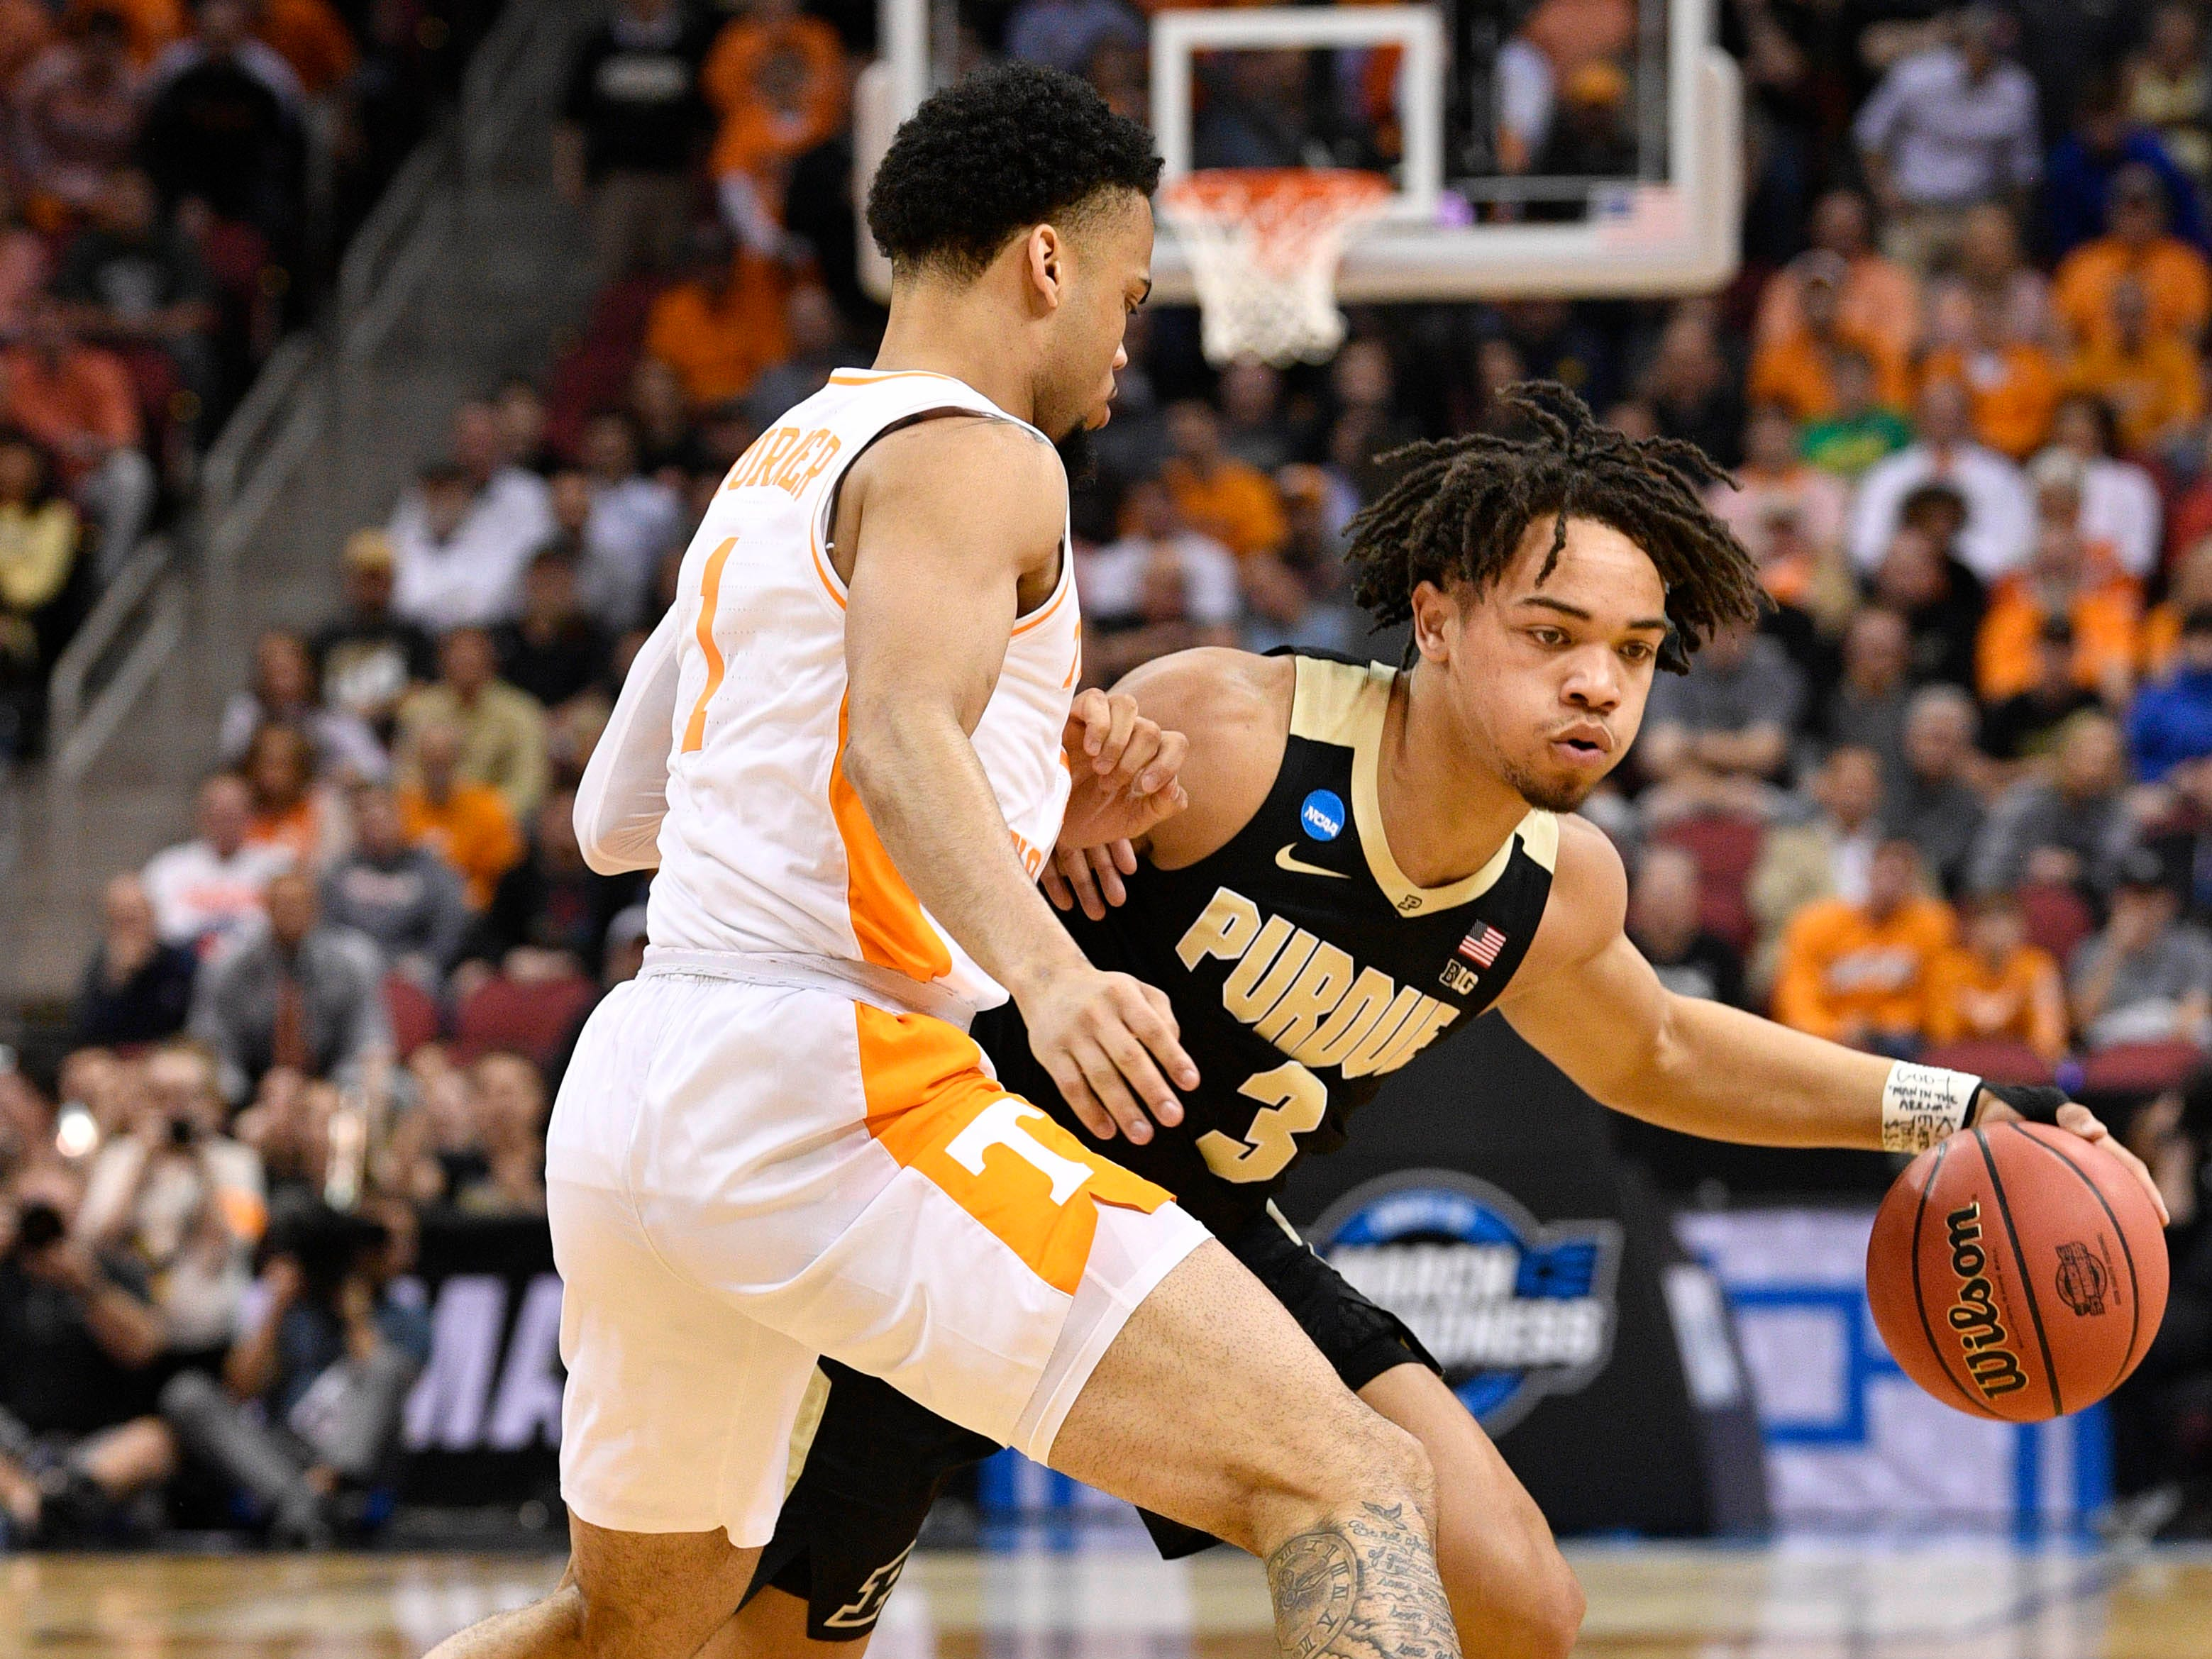 Mar 28, 2019; Louisville, KY, United States; Purdue Boilermakers guard Carsen Edwards (3) works around Tennessee Volunteers guard Lamonte Turner (1) during the first half in the semifinals of the south regional of the 2019 NCAA Tournament at KFC Yum Center. Mandatory Credit: Jamie Rhodes-USA TODAY Sports